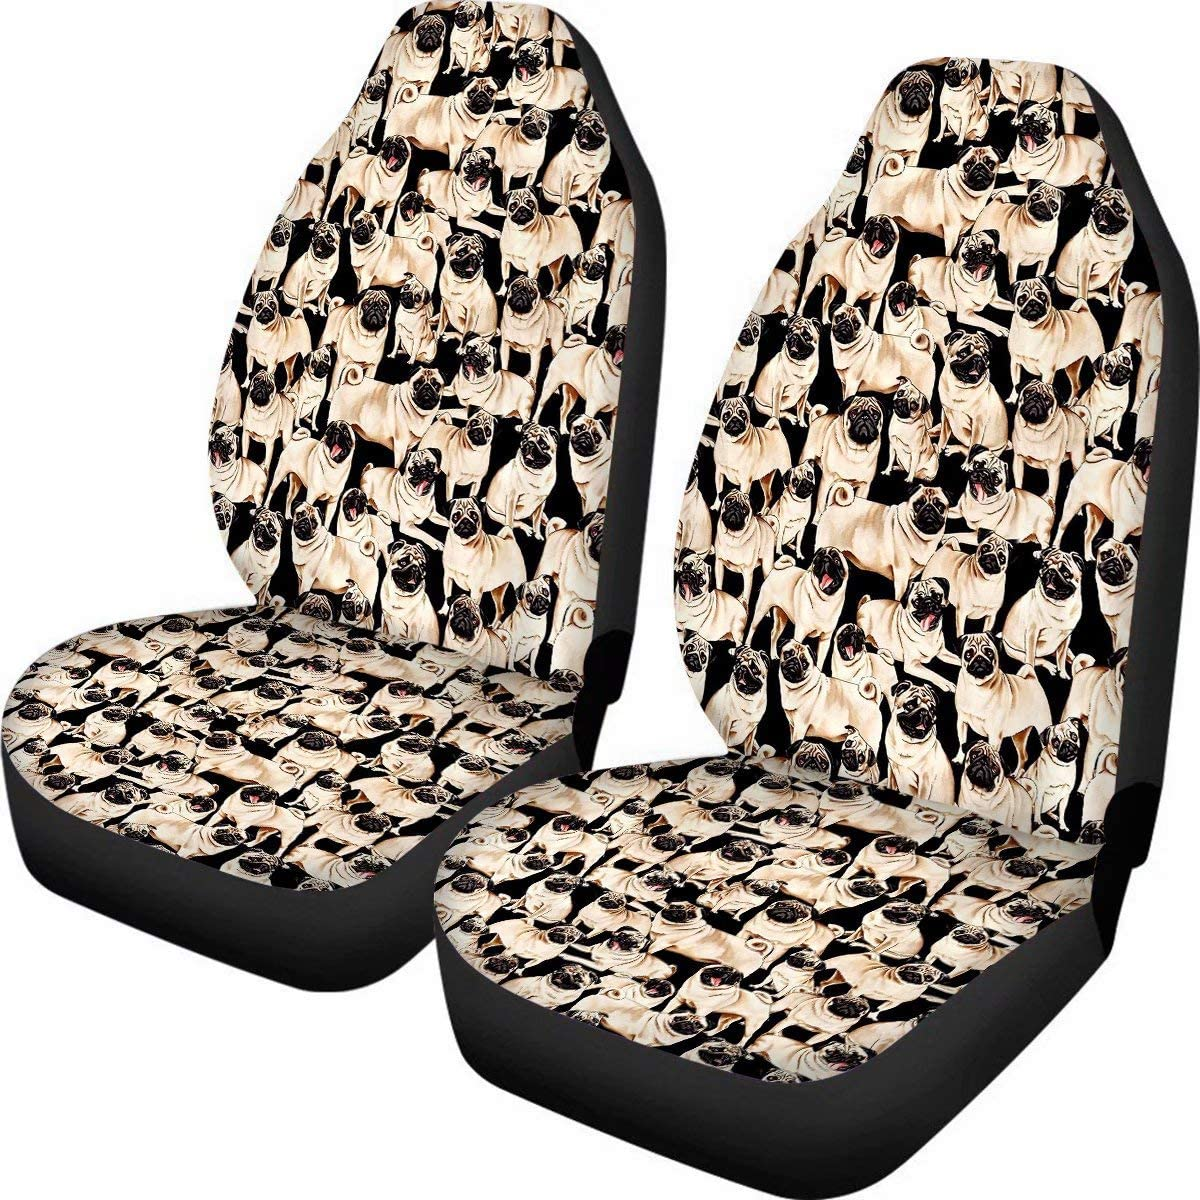 Freewander Pug Cute Award-winning store Women Car Protector Cus Discount is also underway Seat Covers